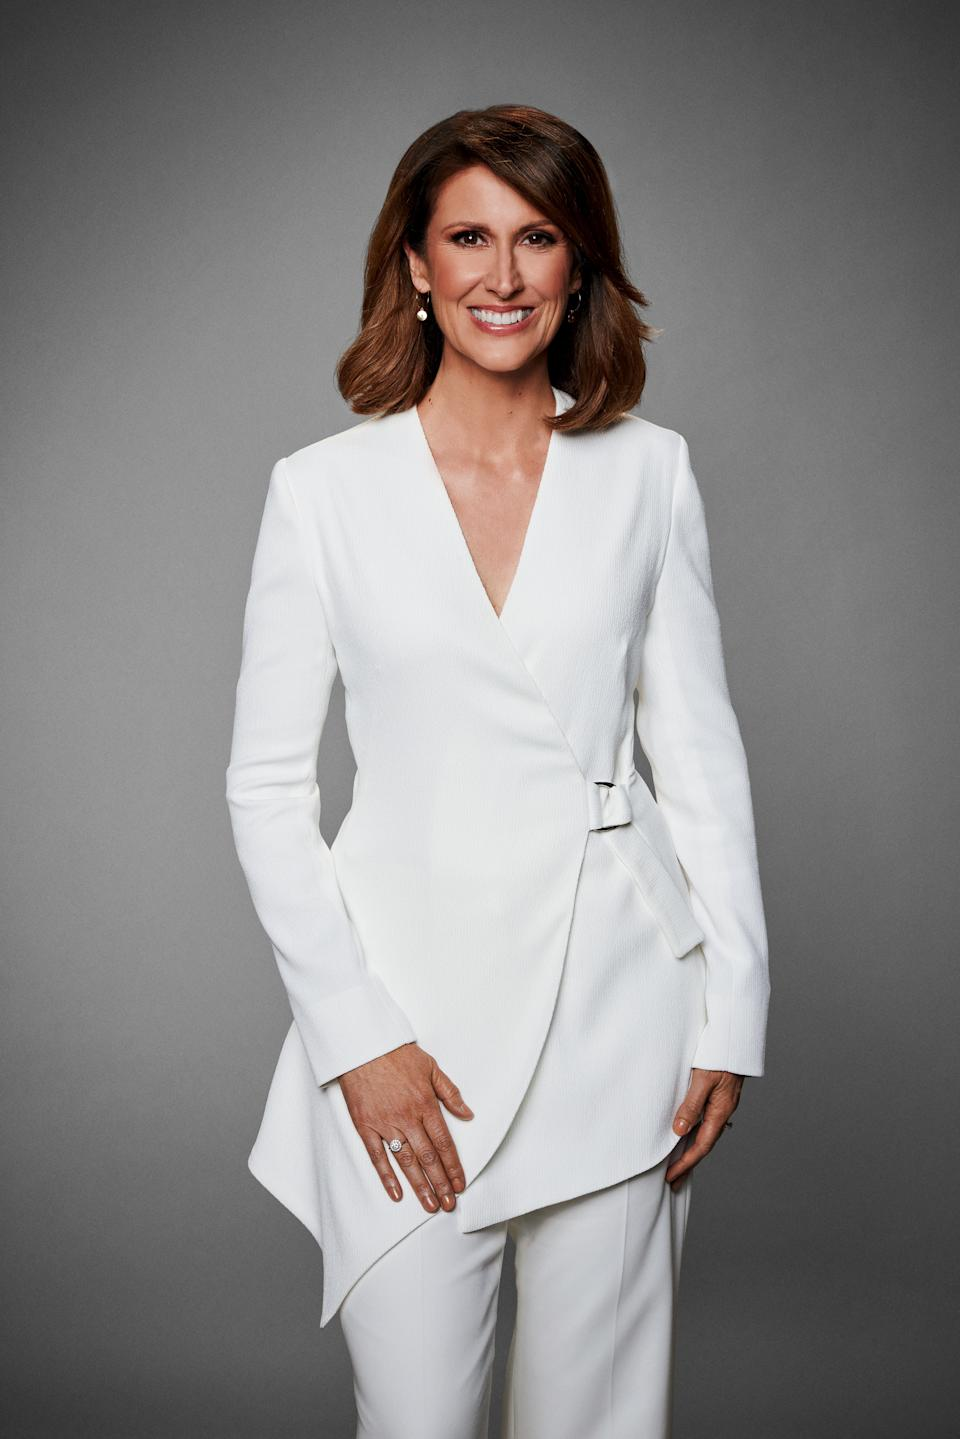 Natalie Barr in a white suit